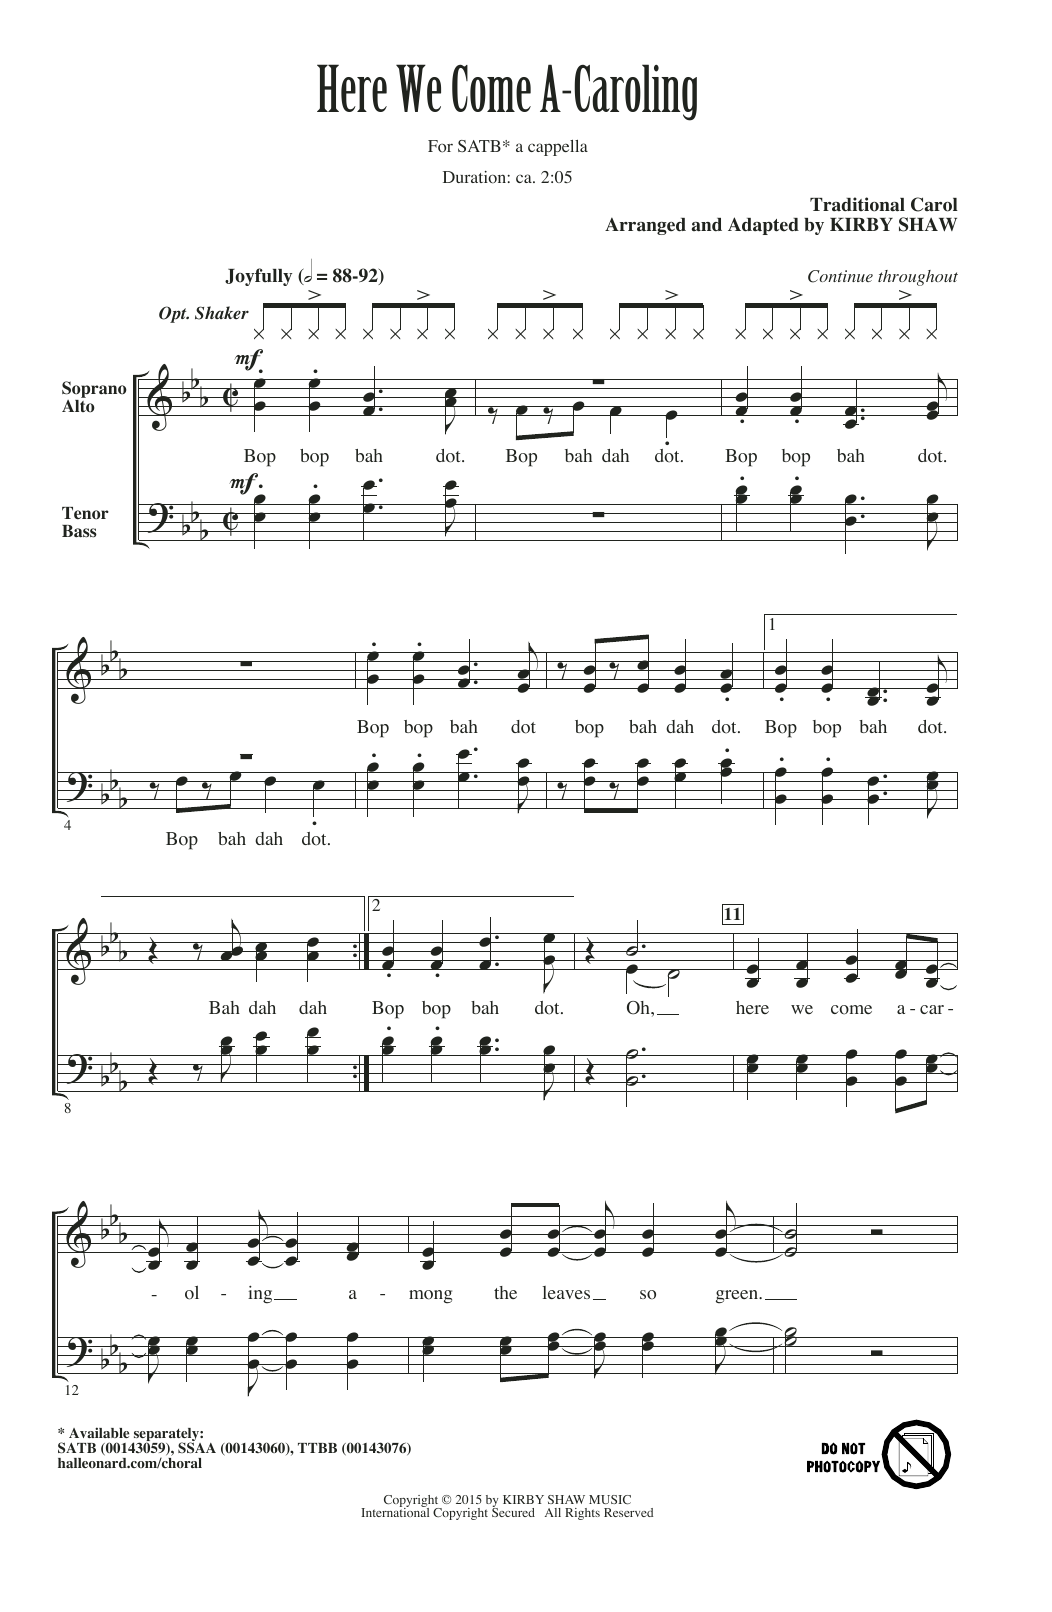 Here We Come A-Caroling Sheet Music